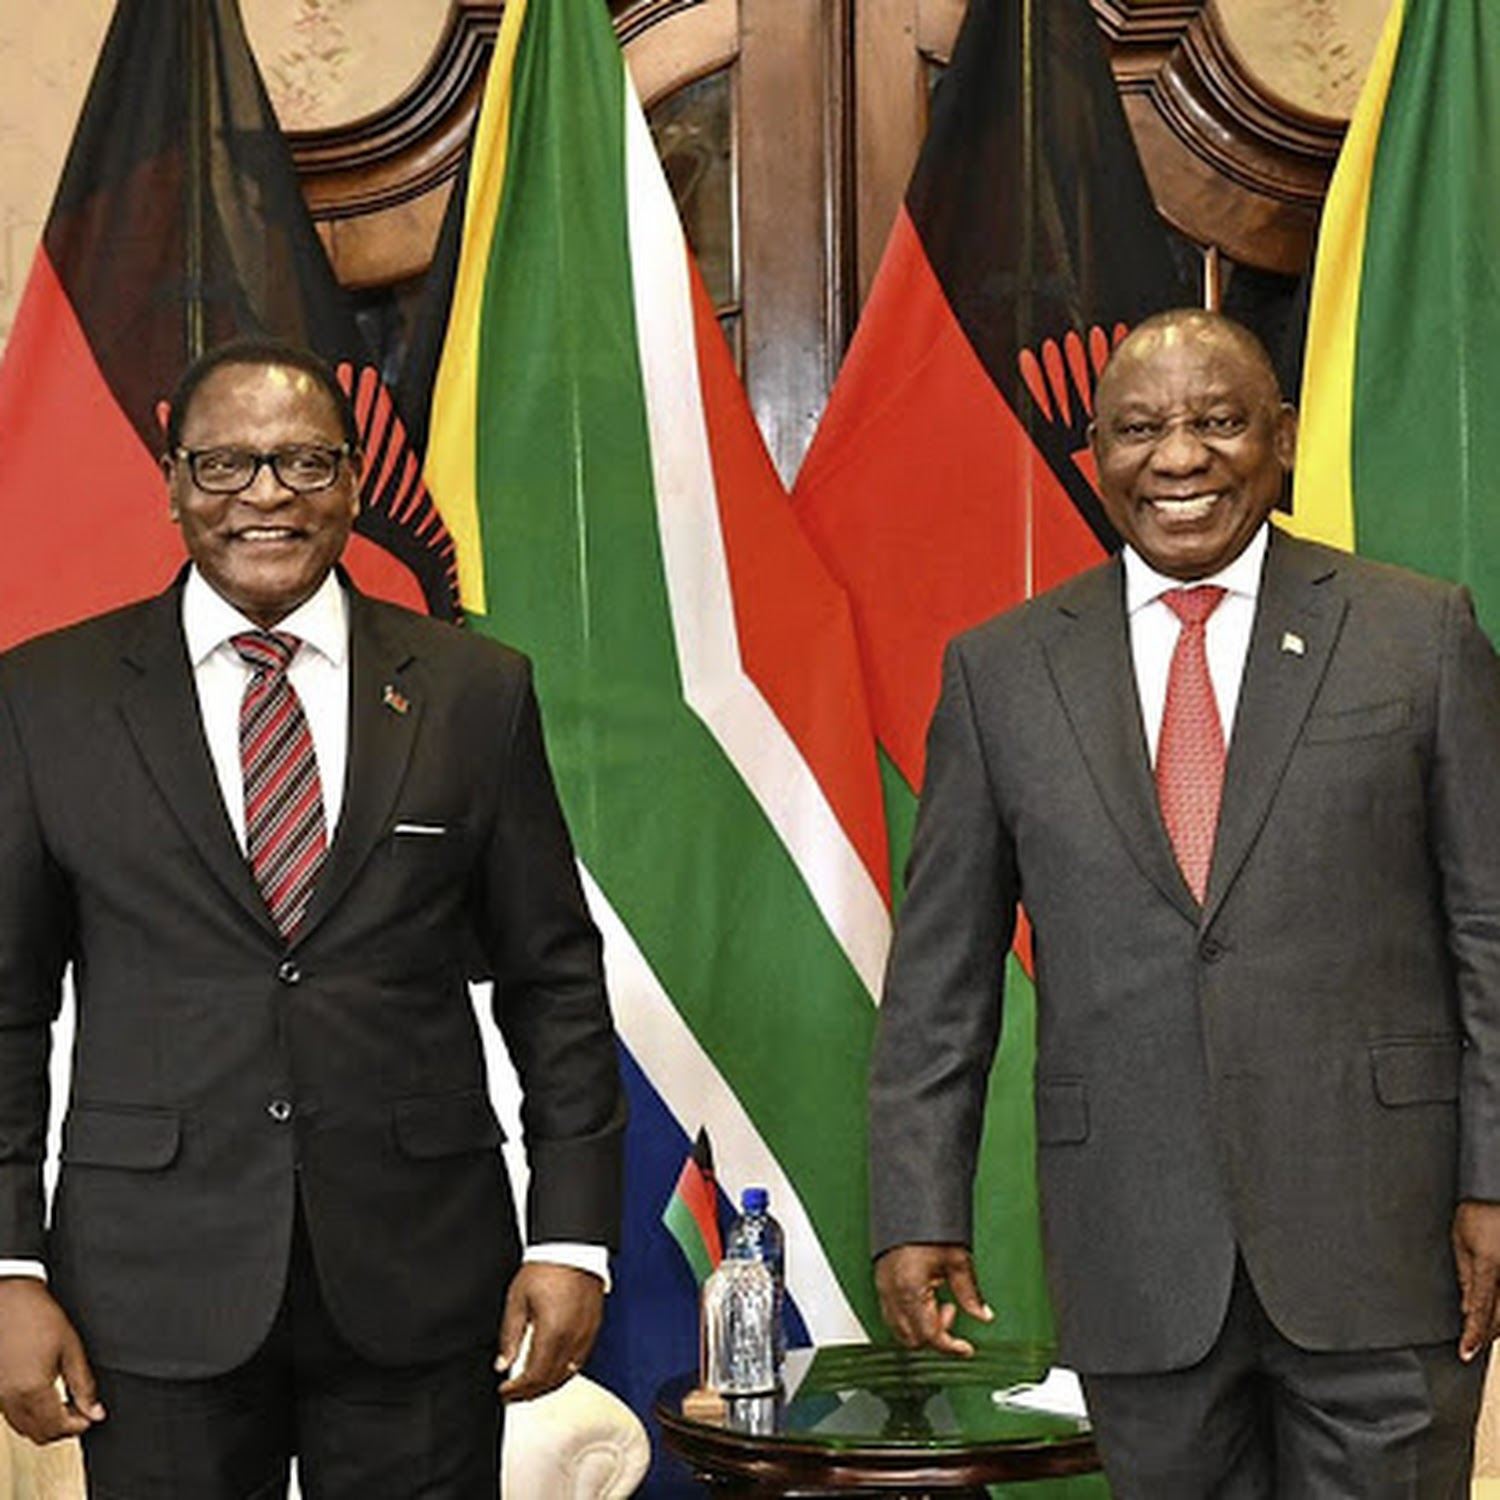 President Chakwera won't hand over Prophet Bushiri to South Africa | Matters in the hands of the Law